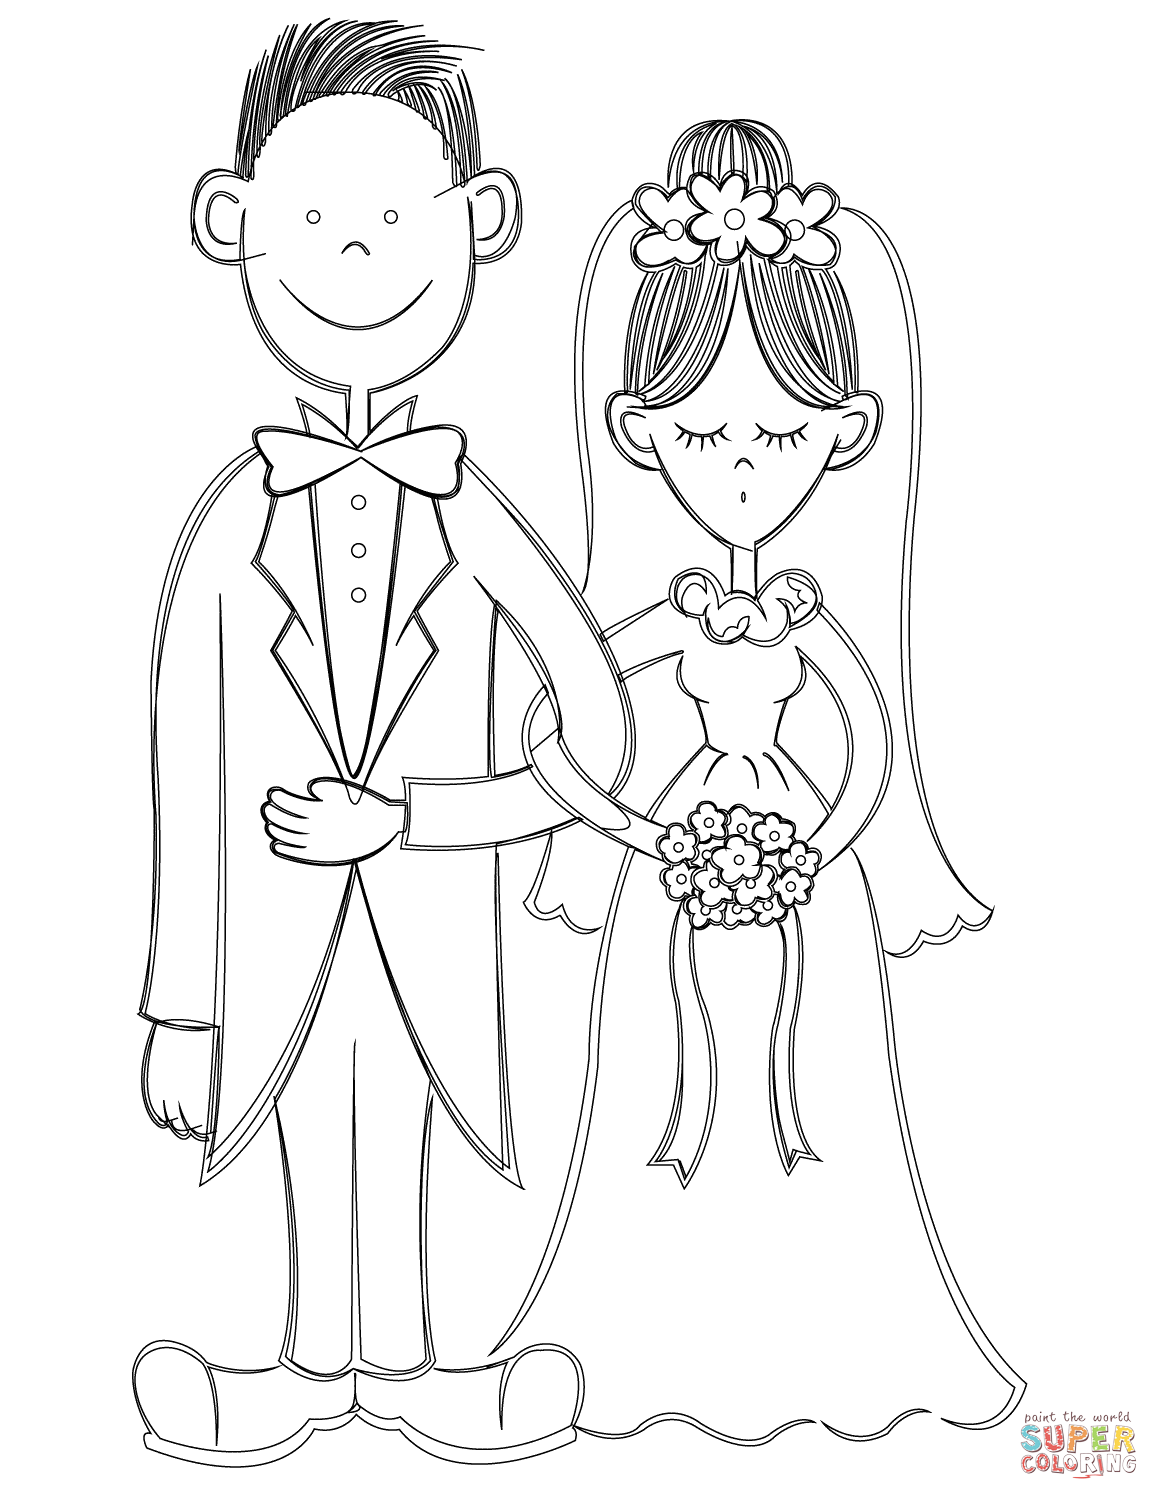 Bride And Groom Coloring Page Free Printable Coloring Pages Cat Coloring Book Wedding Coloring Pages Free Printable Coloring Pages